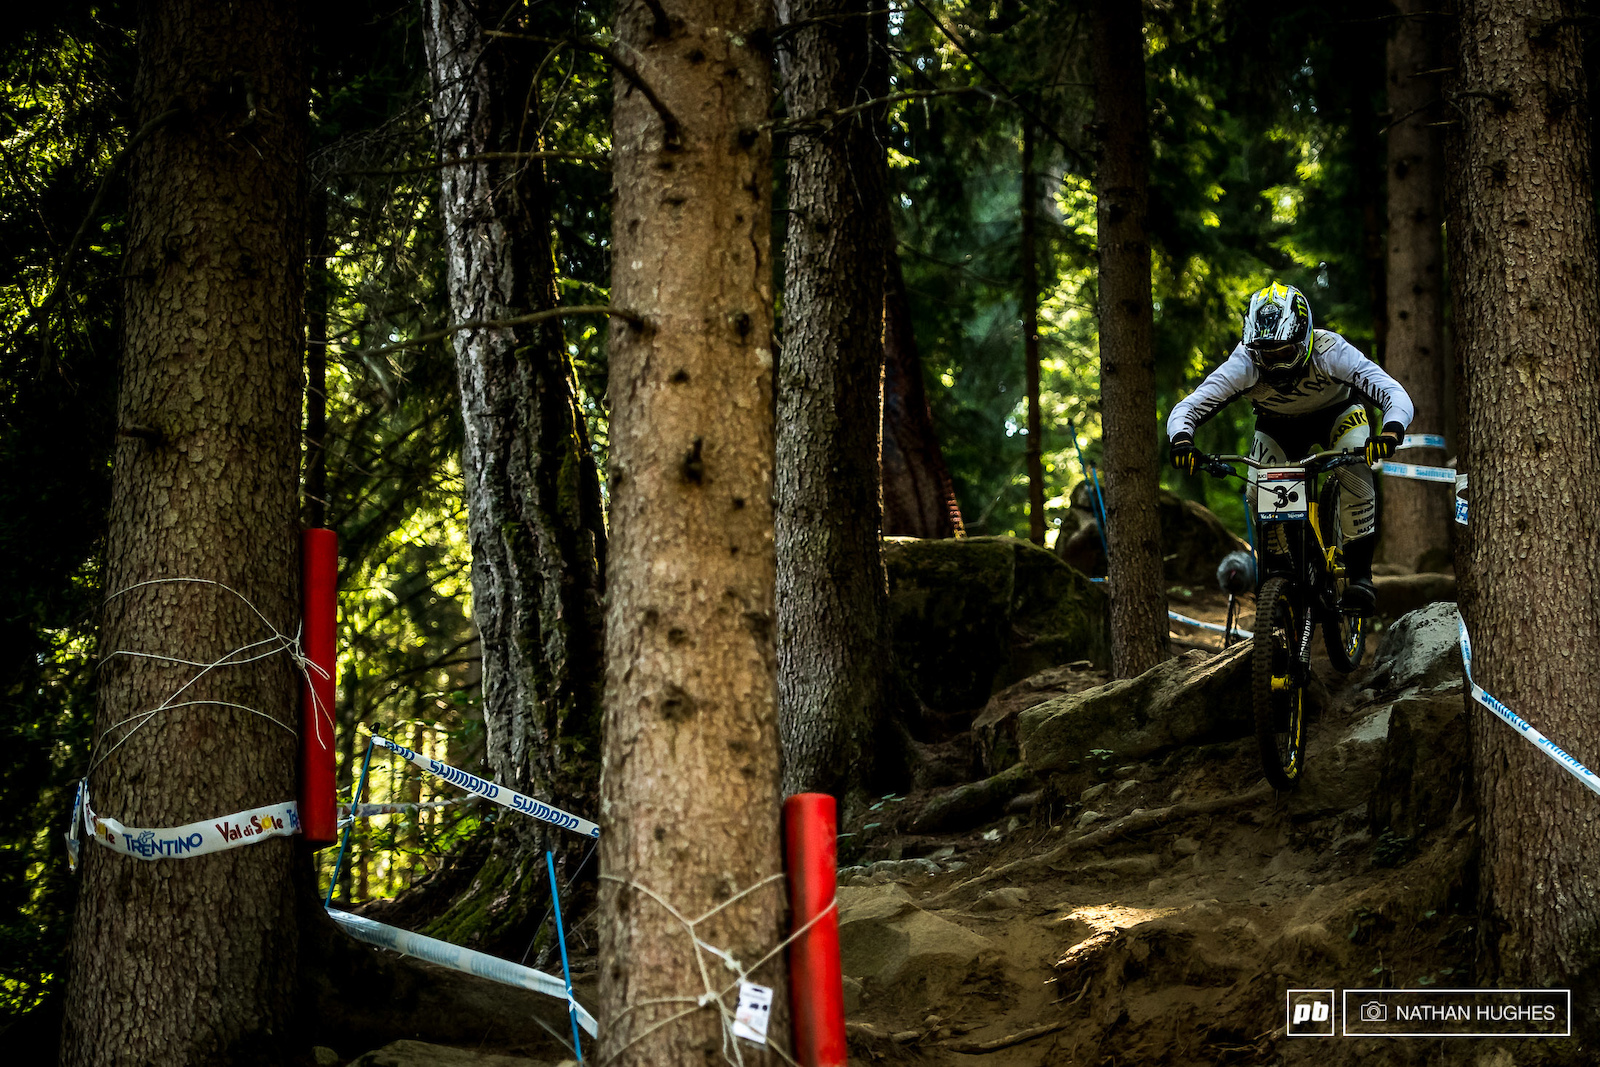 Troy Brosnan sharking his way through the woods for 4th.